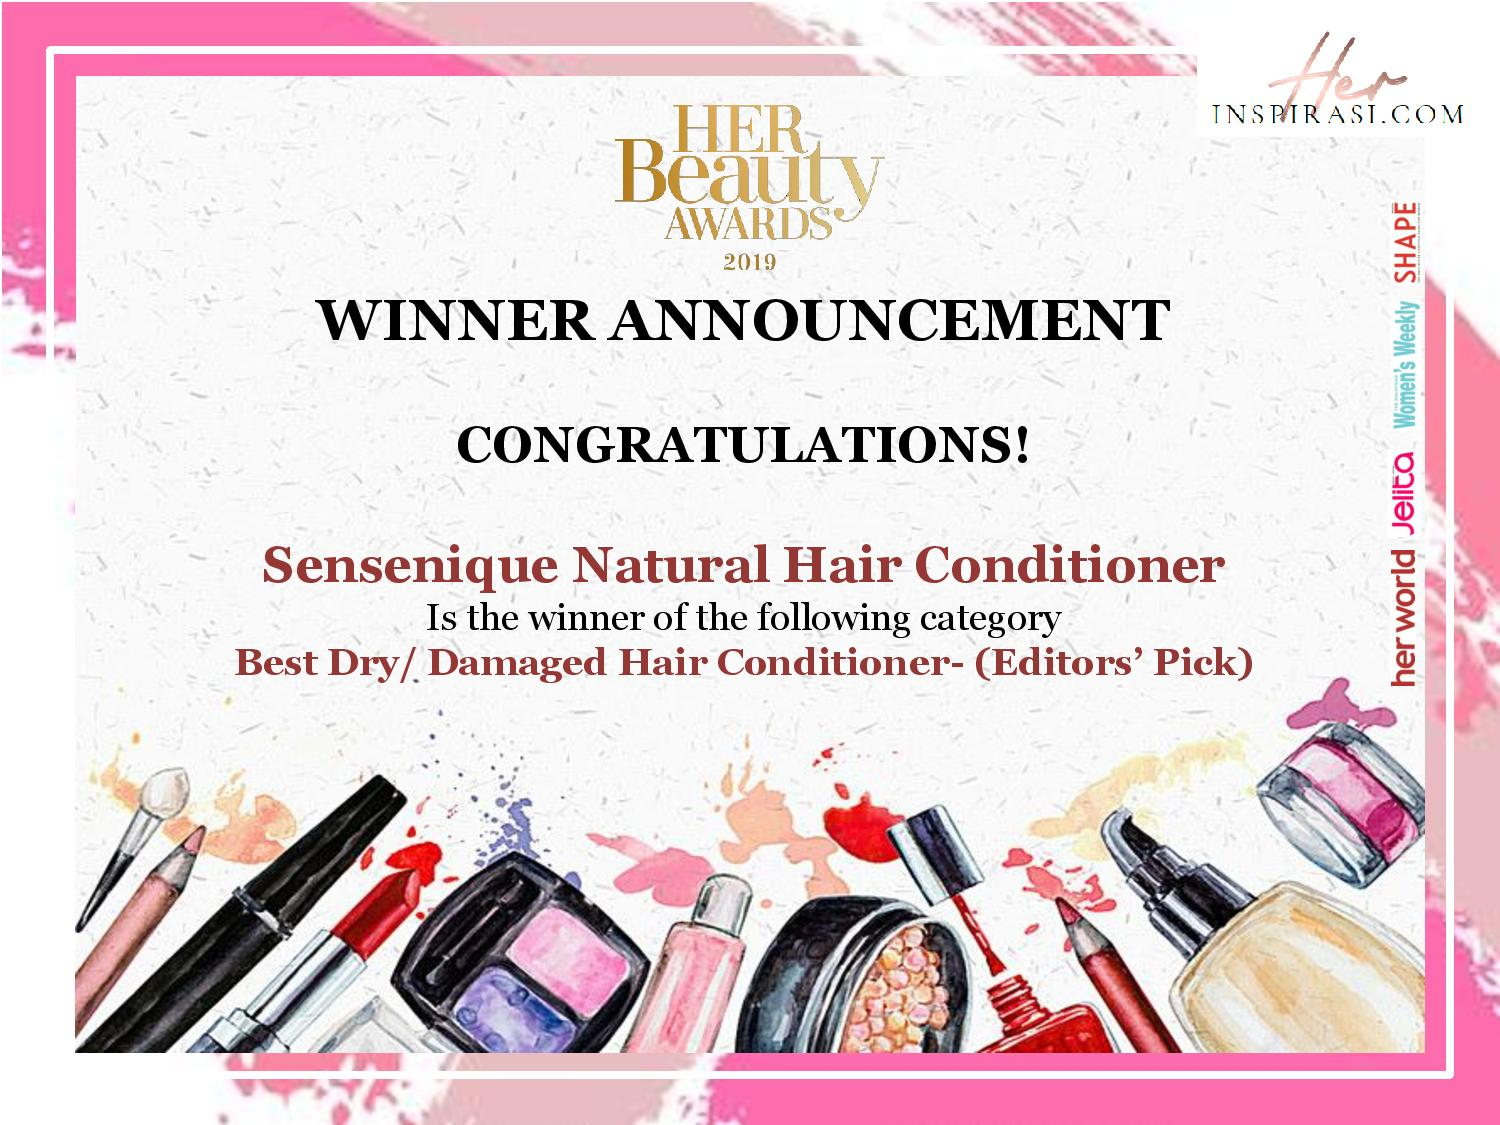 HER BEAUTY AWARDS 2019 - Editors' Pick for Best Dry Damaged Hair Conditioner